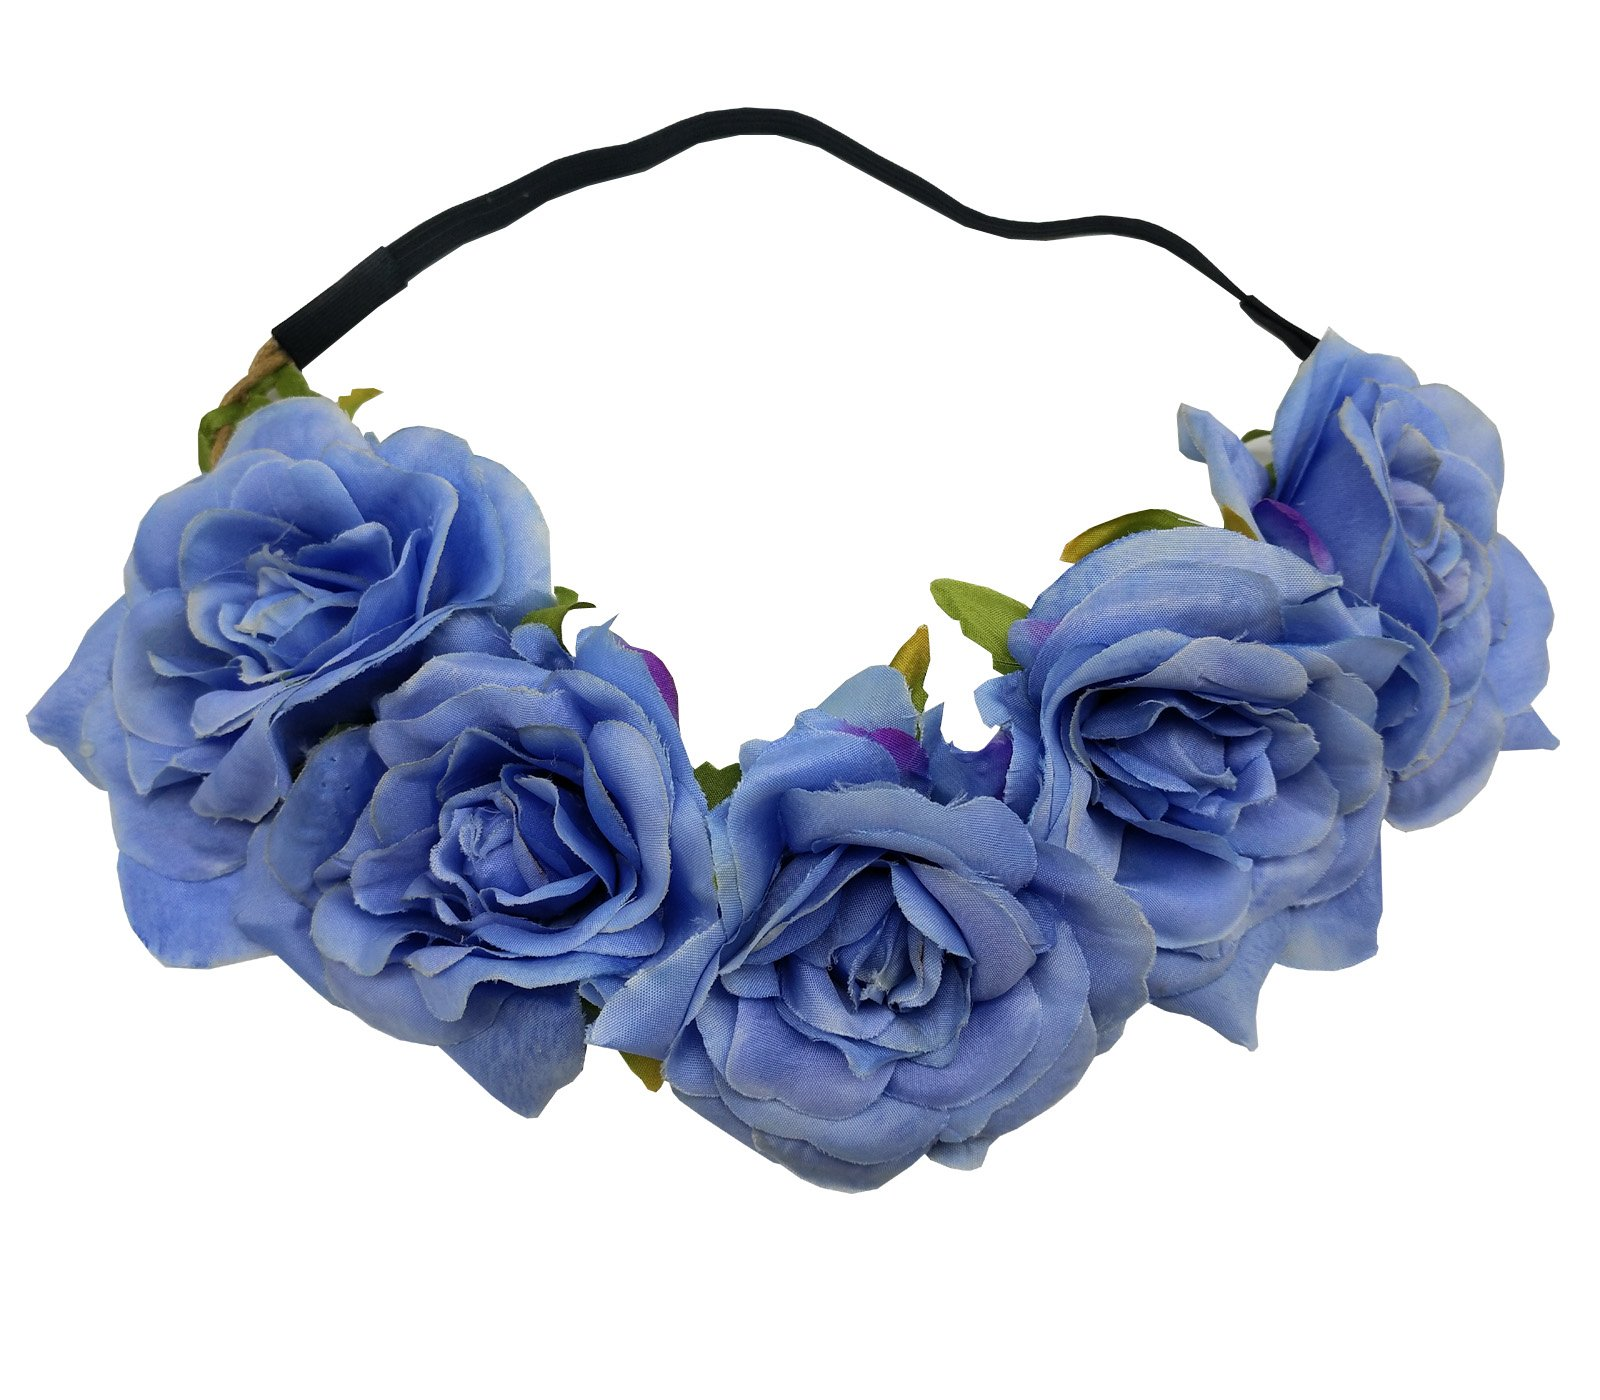 Amazon sanrich fake flower crowns headbands for women girl sanrich fake flower crowns headbands for women girl rose floral head piece maternity photoshoot realistic hair izmirmasajfo